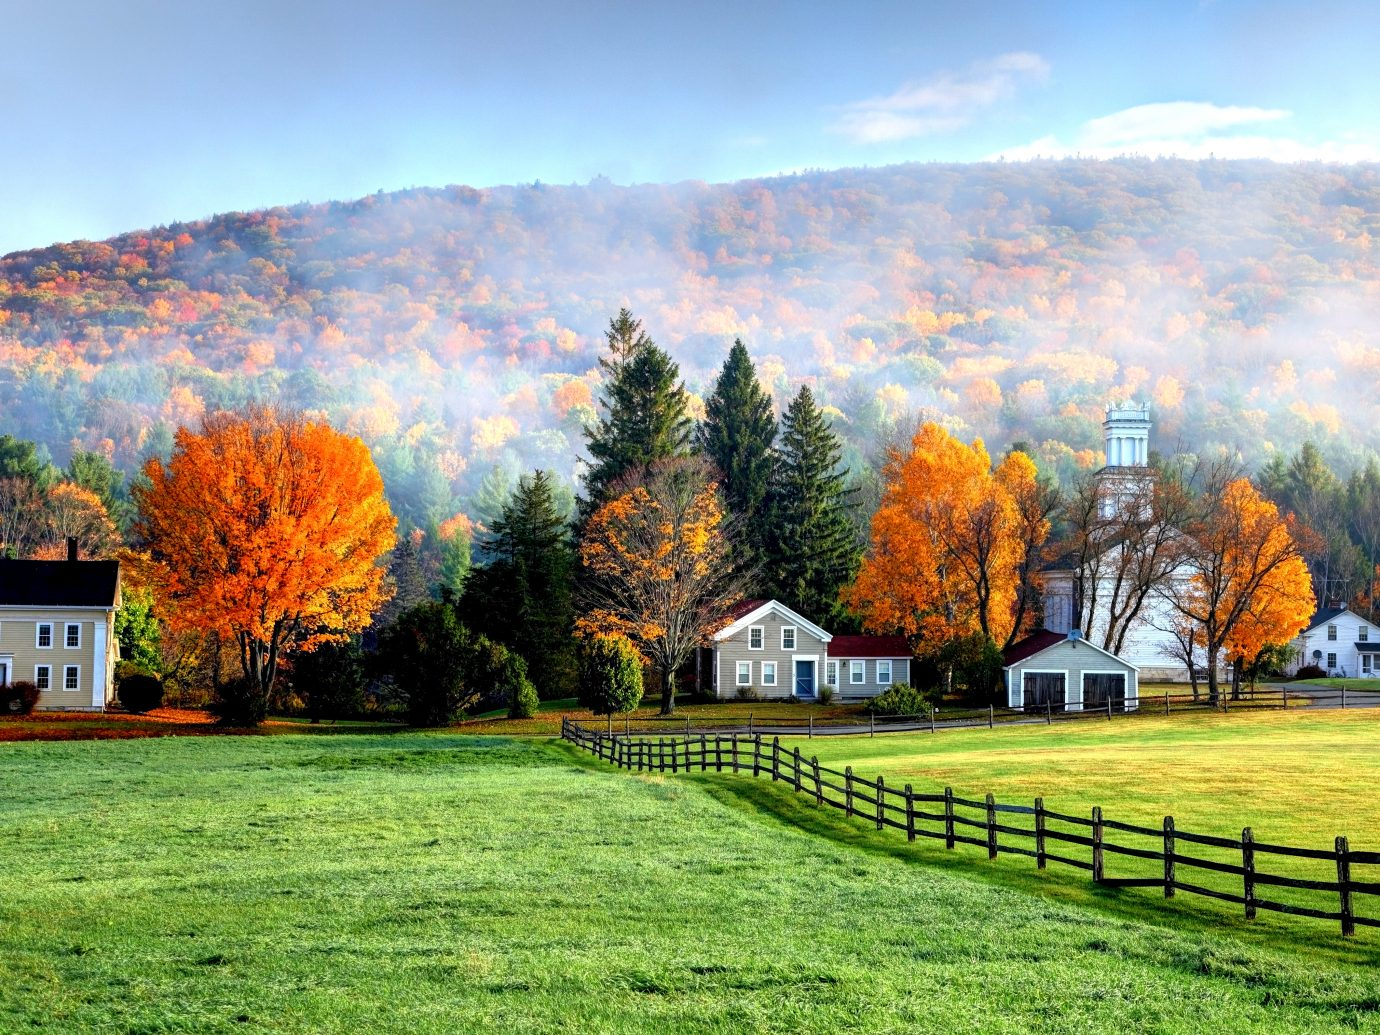 Autumn fog in the village of Tyringham in the Berkshires region of Massachusetts